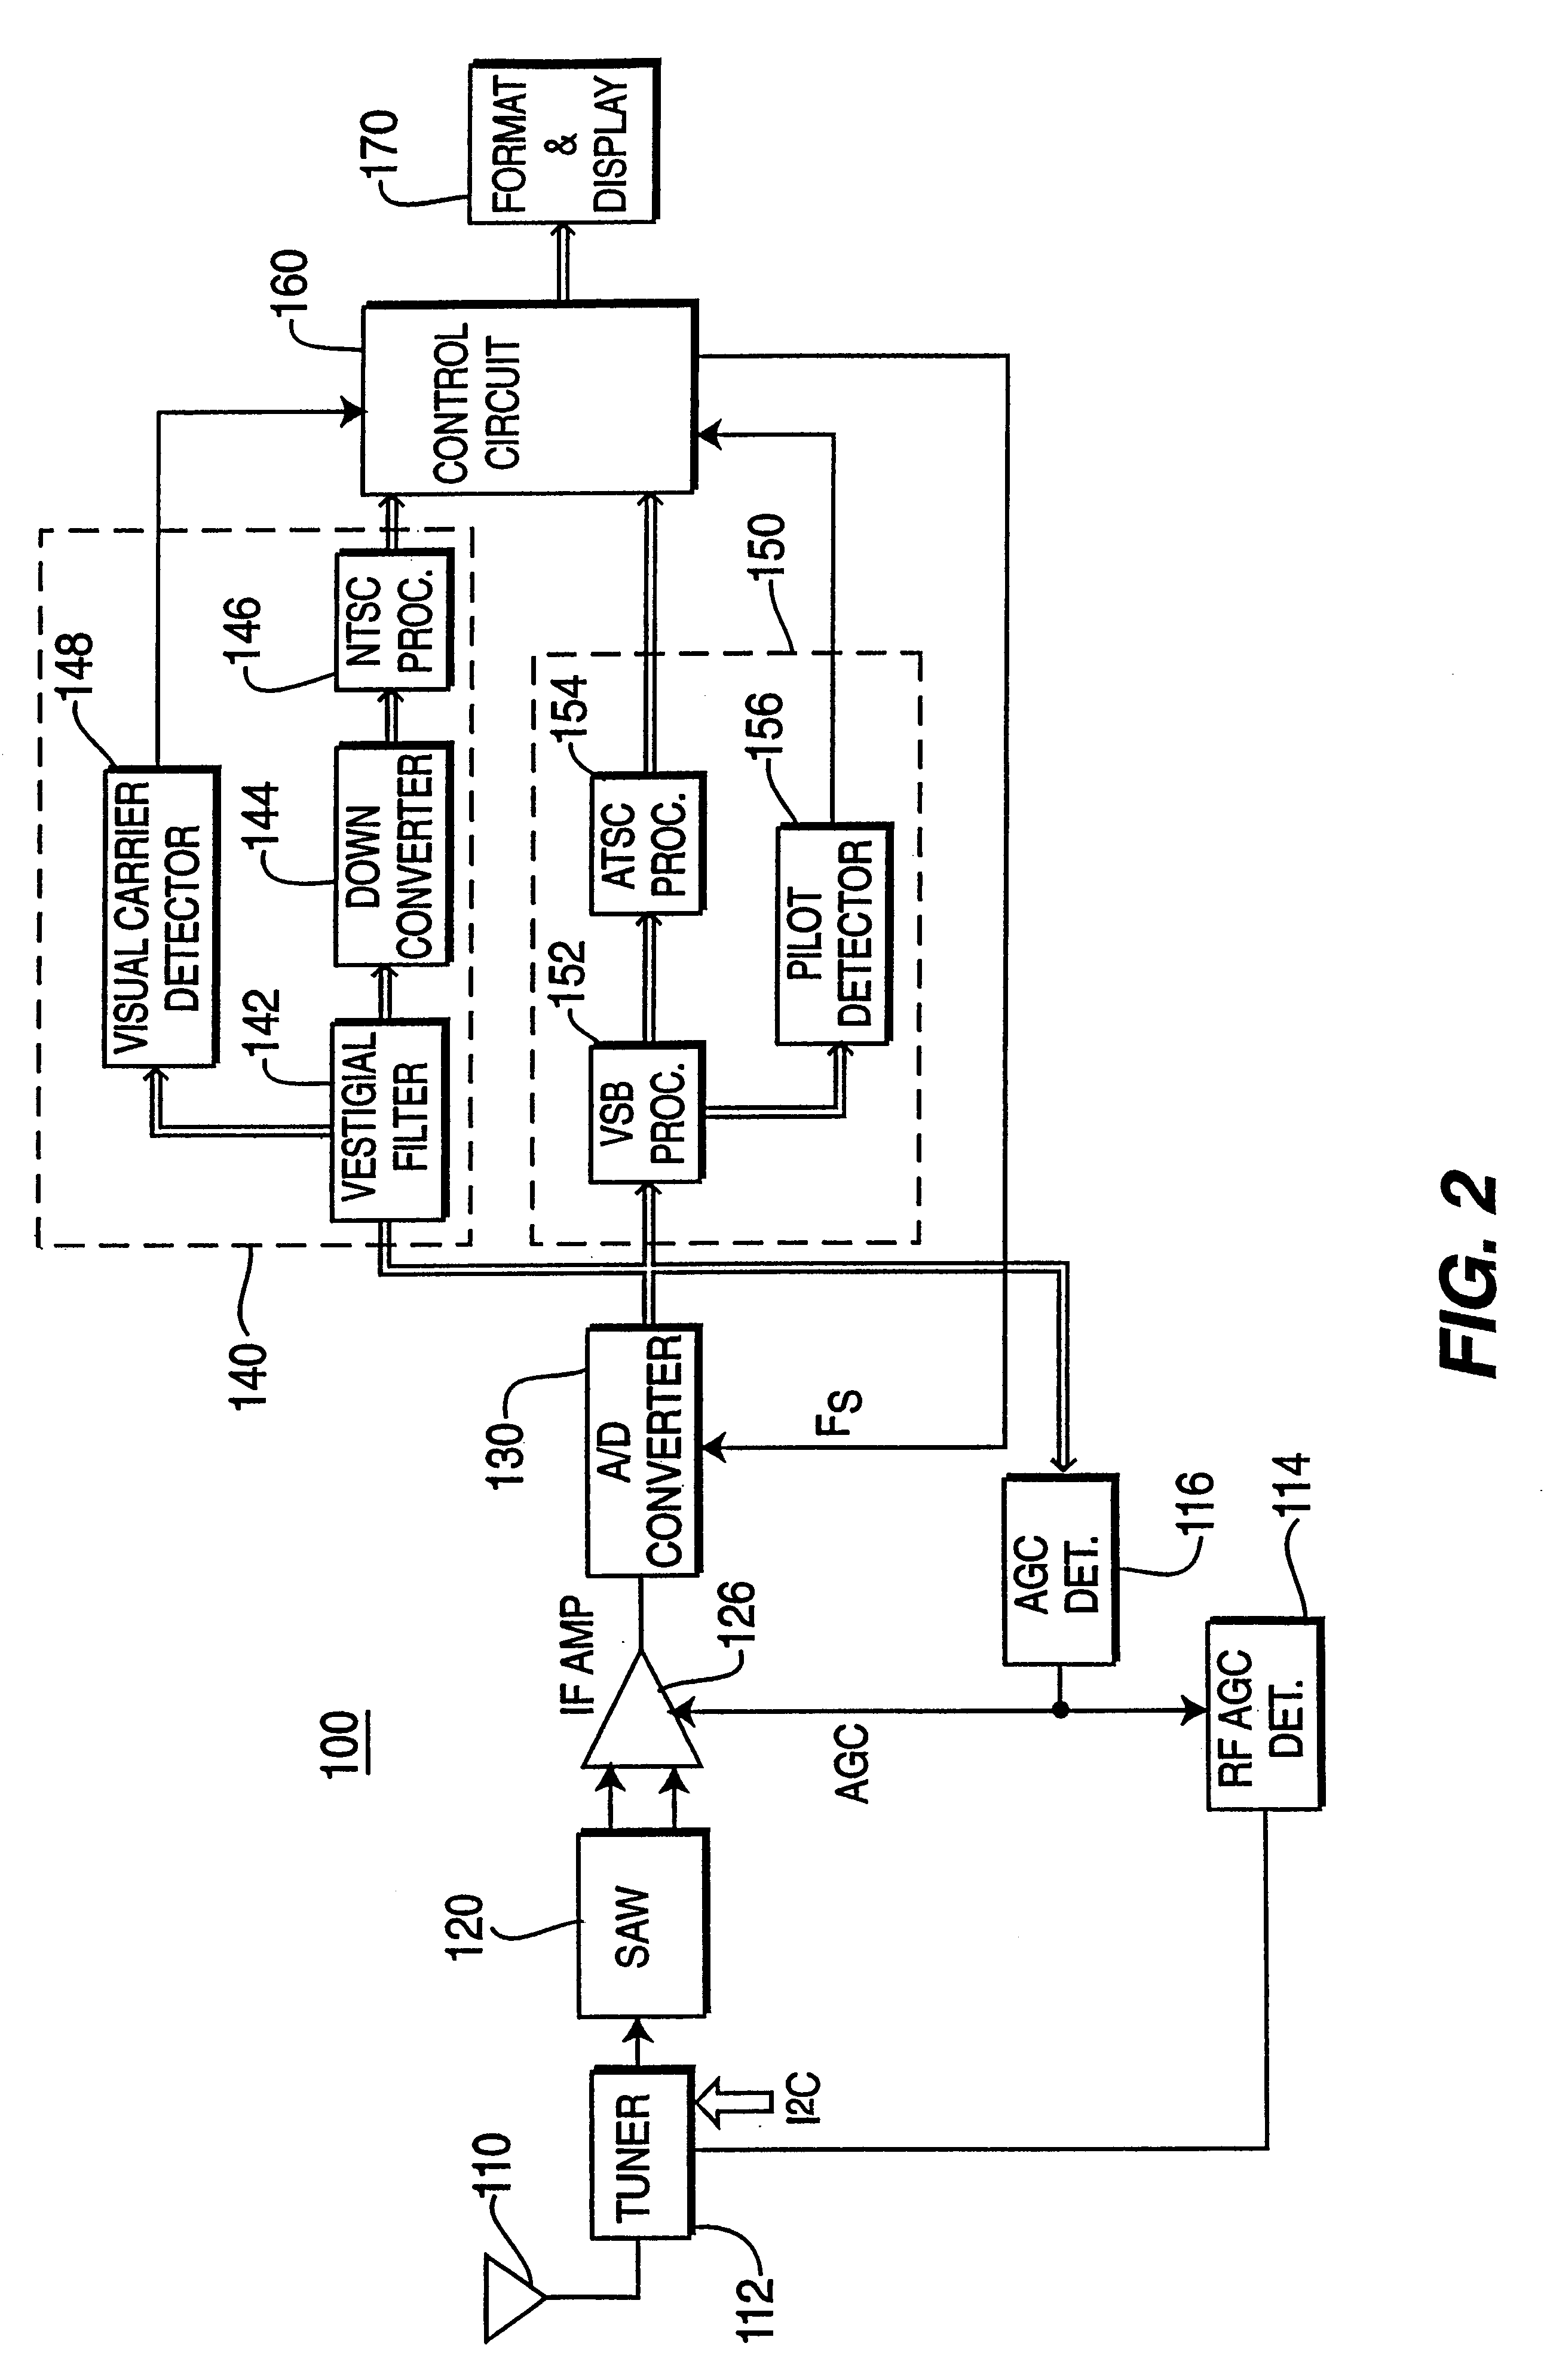 Patent Us6369857 Receiver For Analog And Digital Television 5mhz Notch Filter Circuit Diagram Electronic Diagrams Drawing